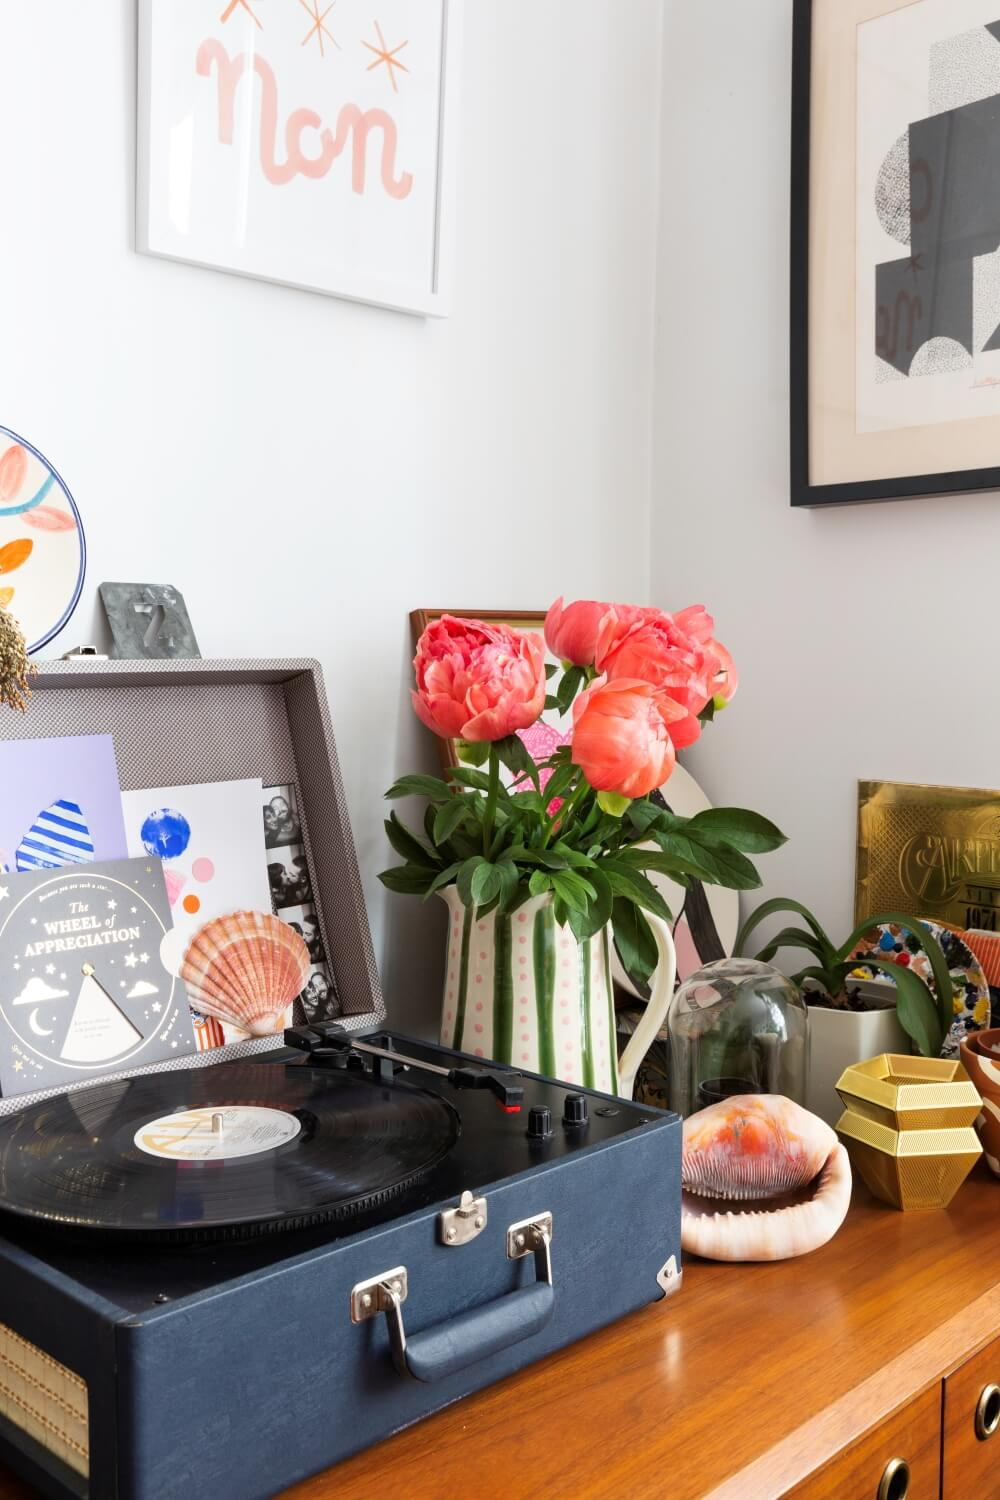 record player on west elm dresser next to vase of peonies